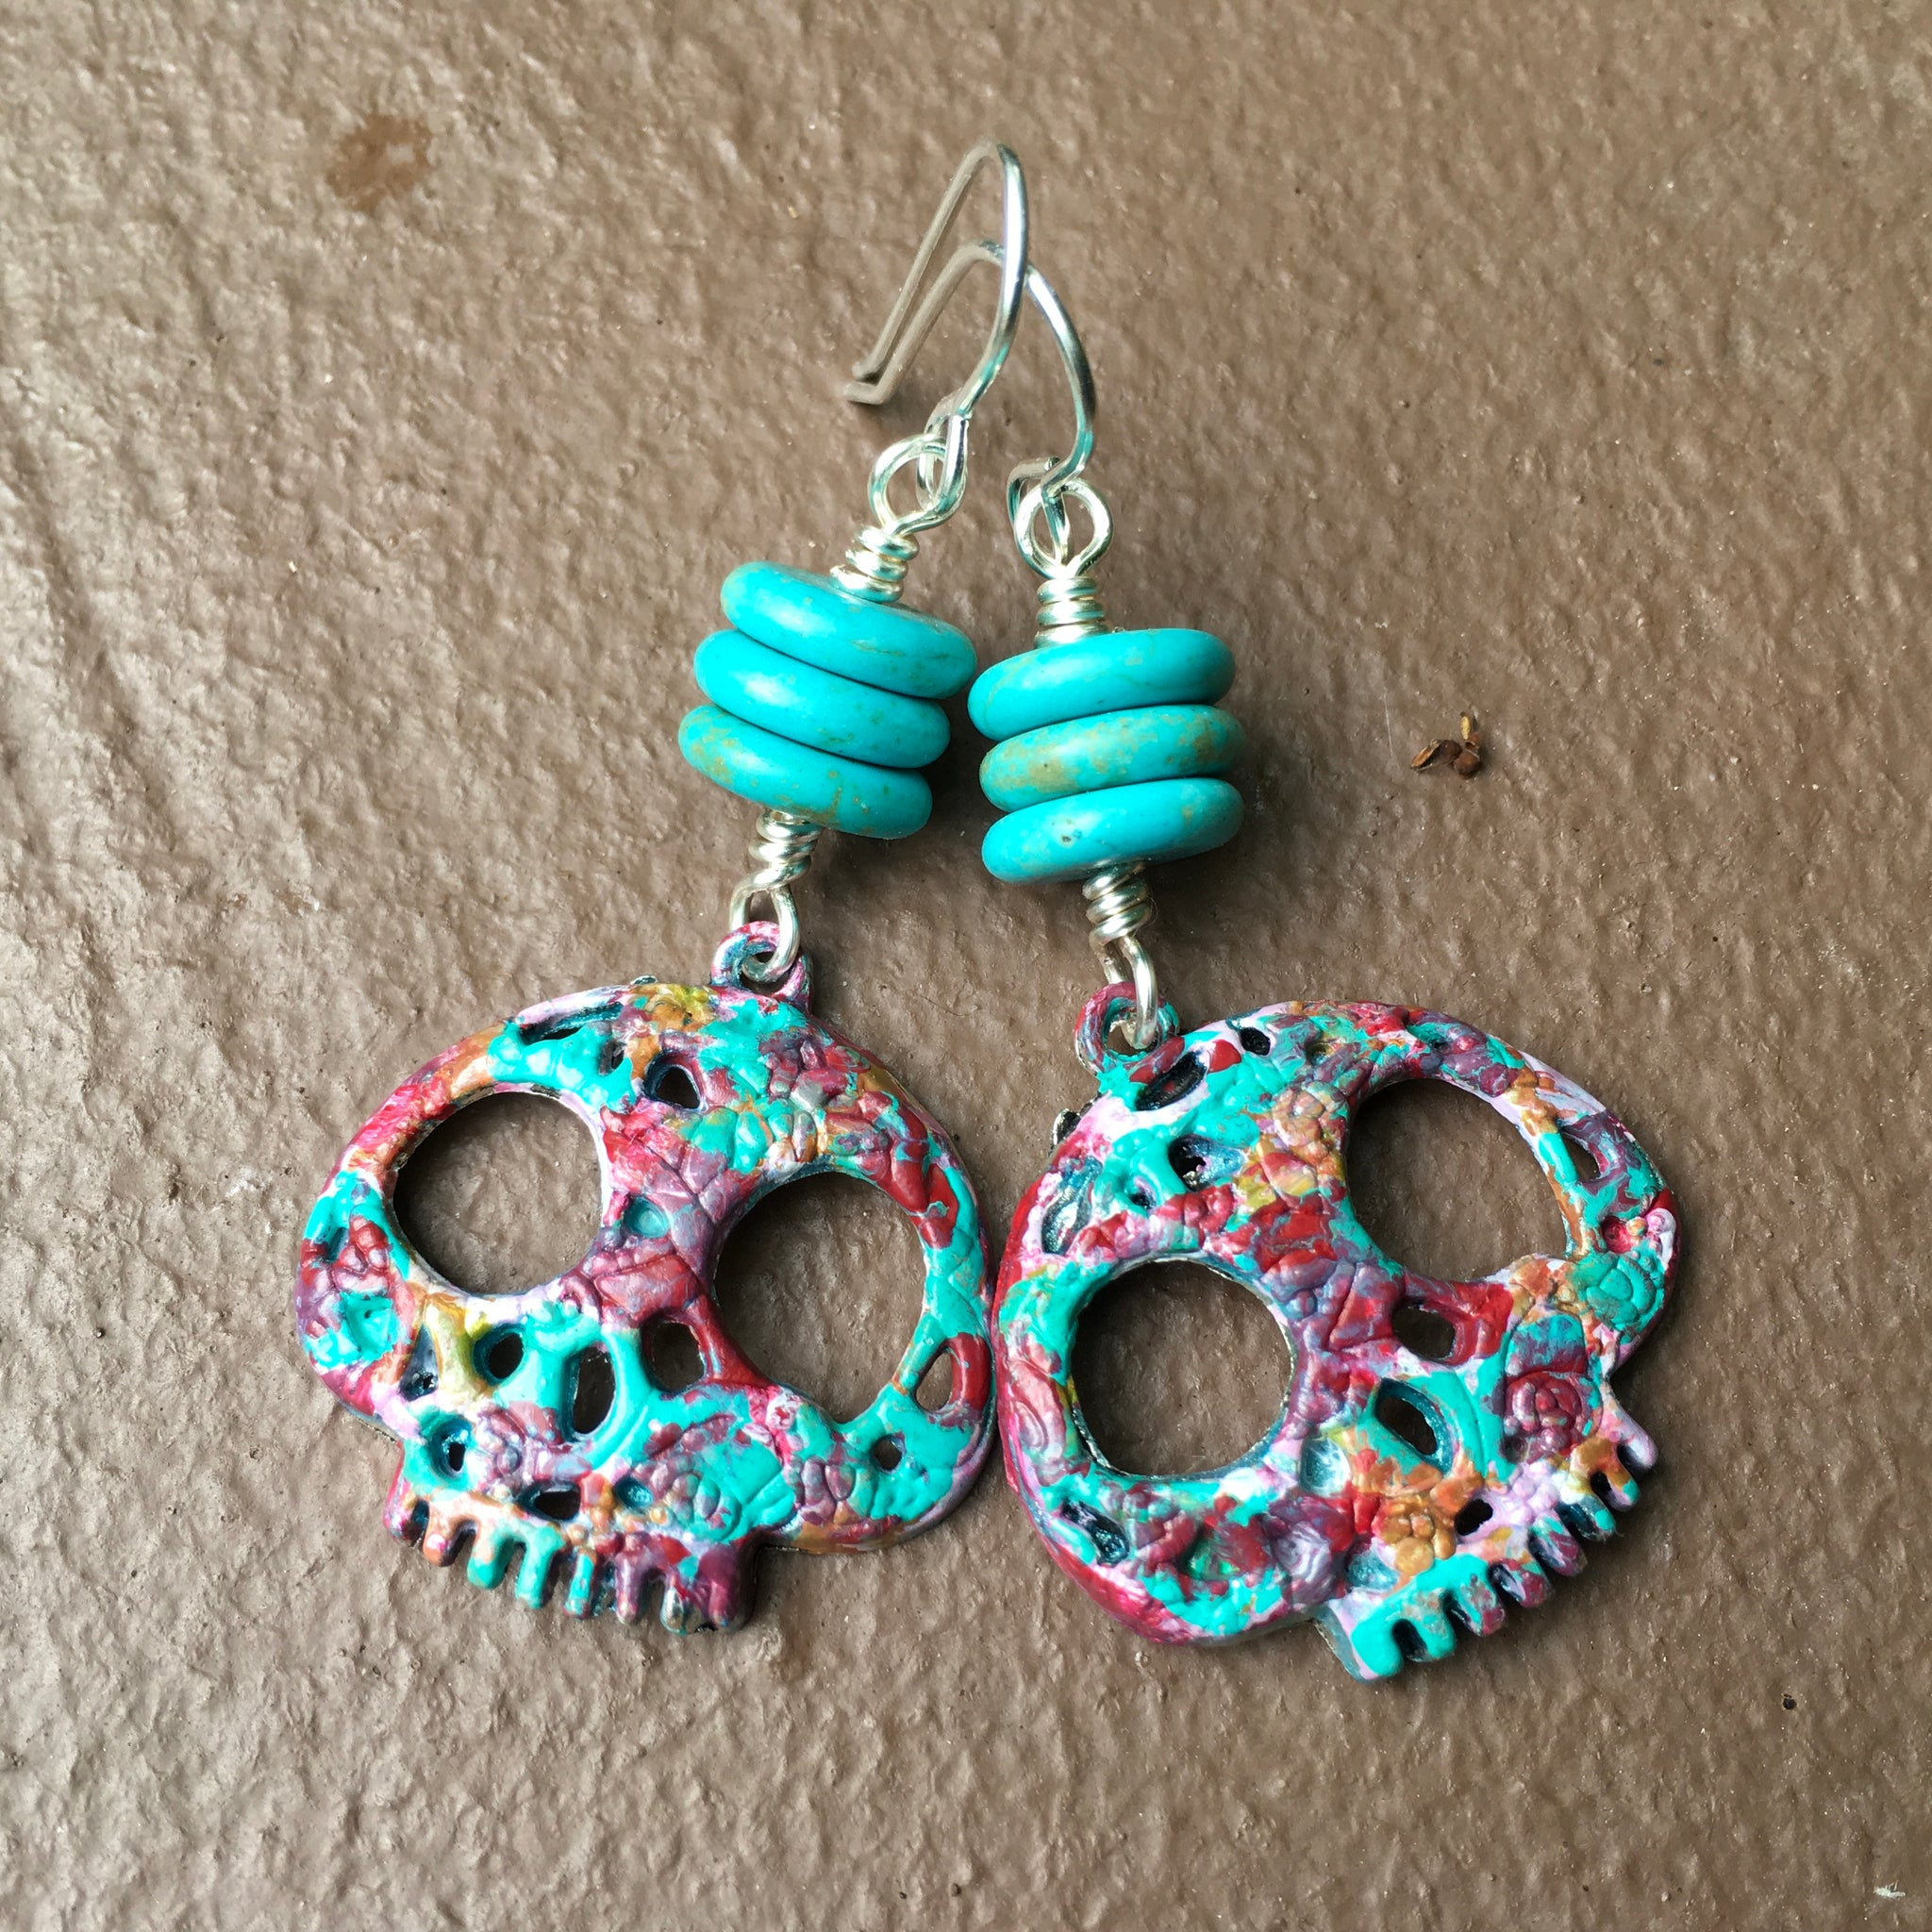 Crazy Colorful Hand Painted Sugar Skull Earrings